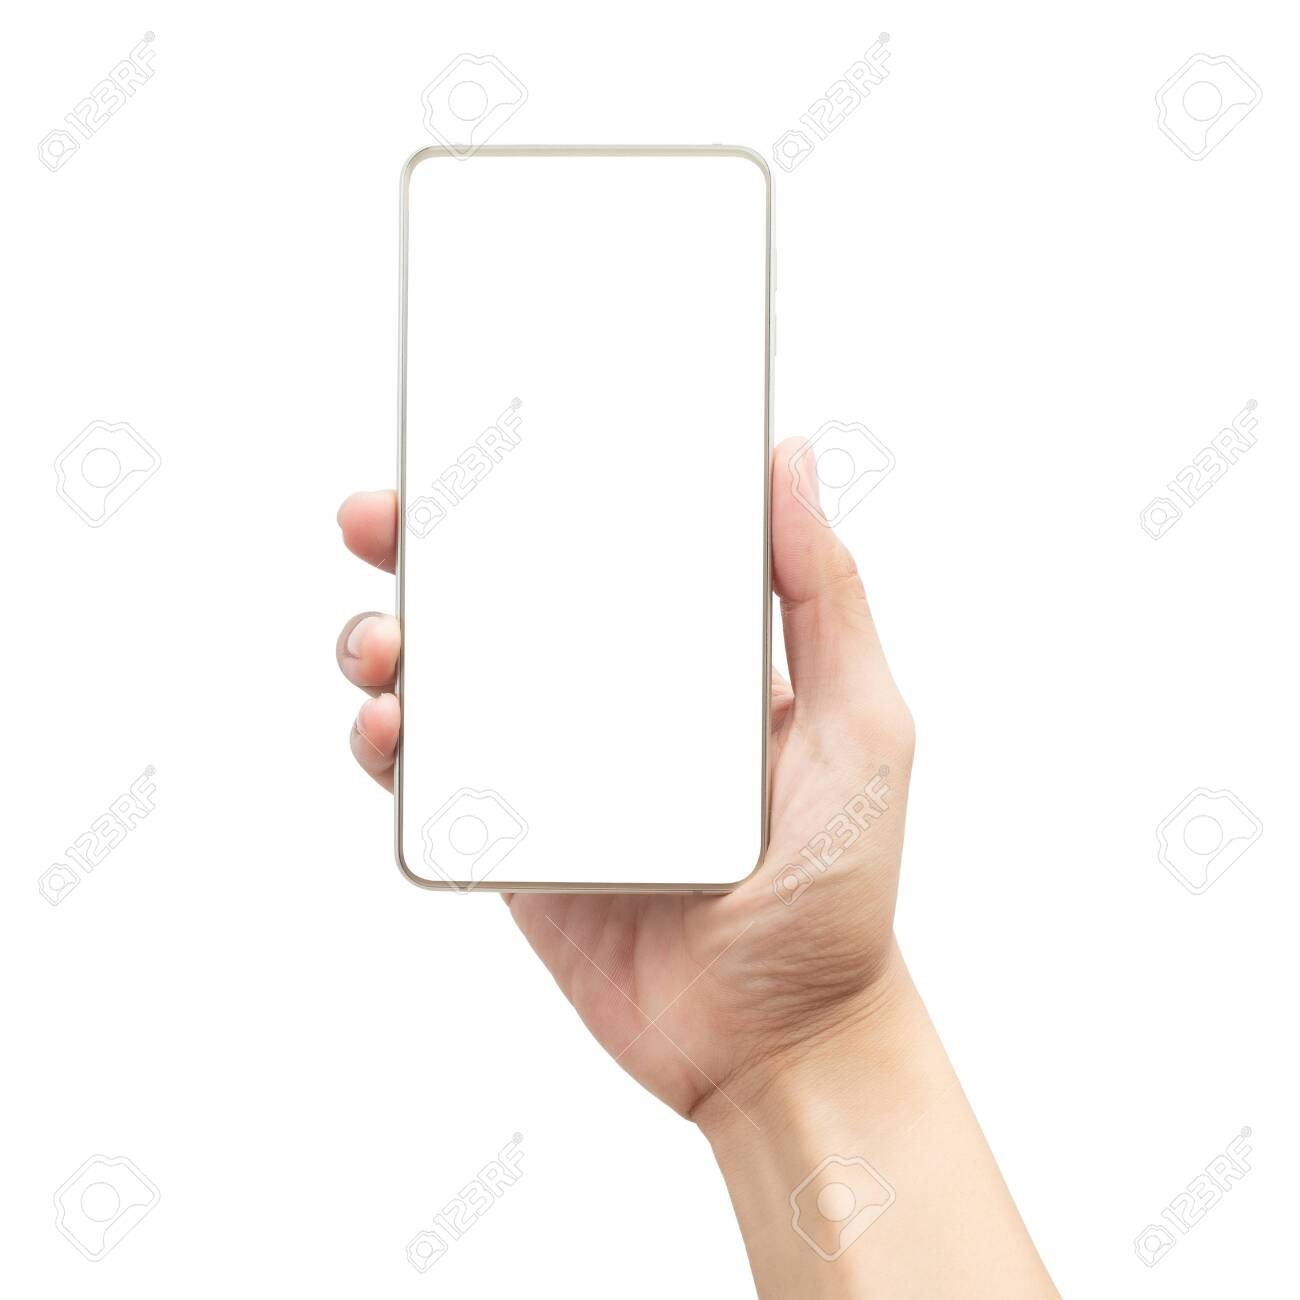 Male hand holding the gold smartphone with blank screen isolated on white background - 150278791